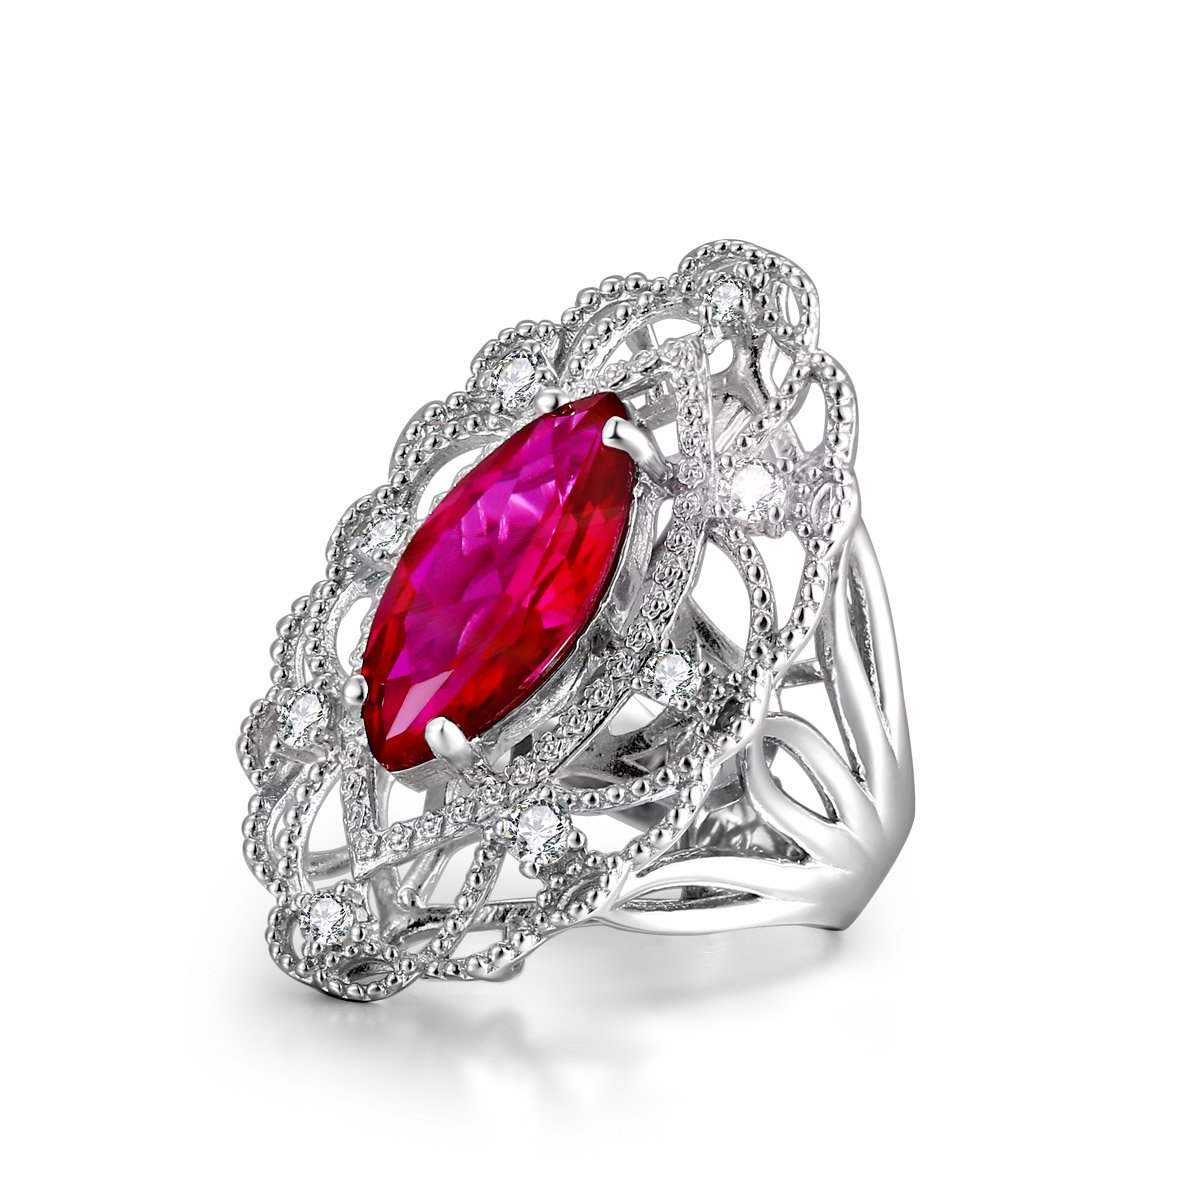 Caperci Vintage Sterling Silver Marquise Cut Fuscia Created Ruby Statement Ring with Diamond Accent Size 9